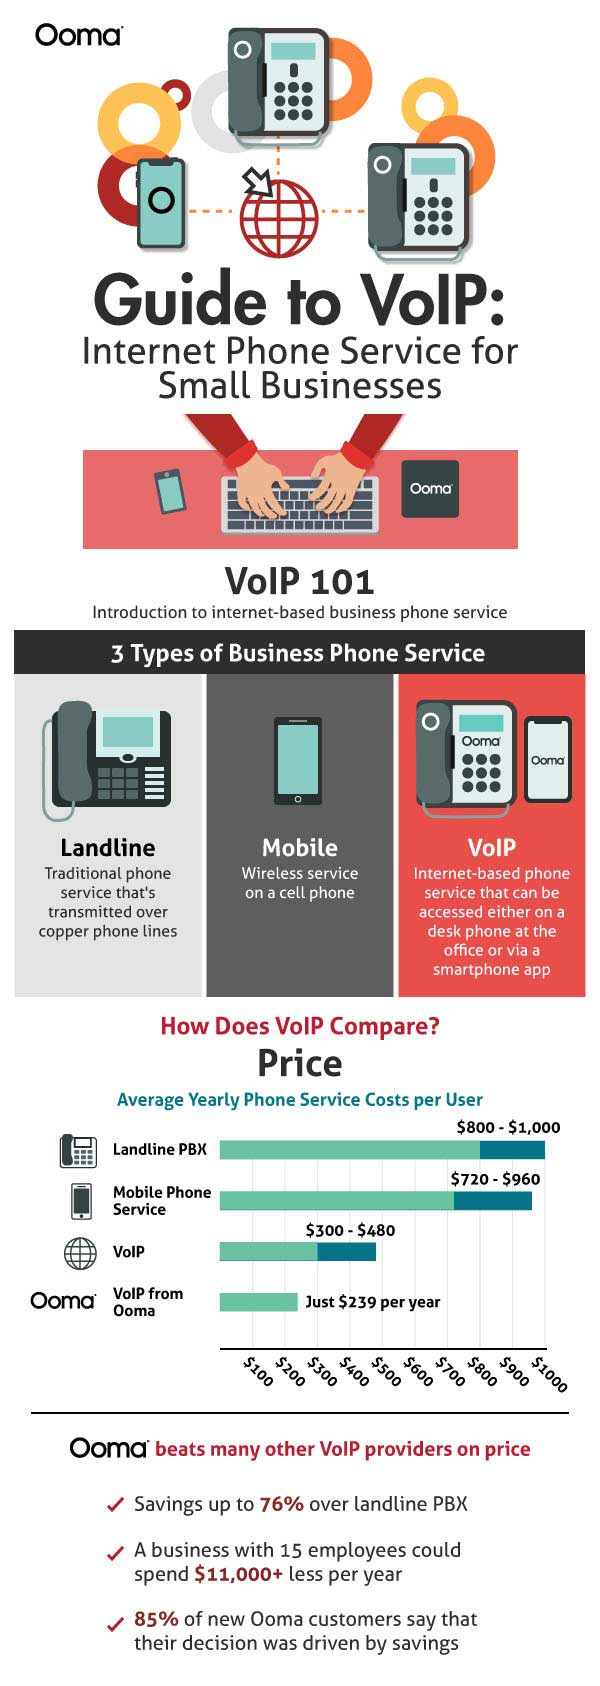 guide to voip infographic 1